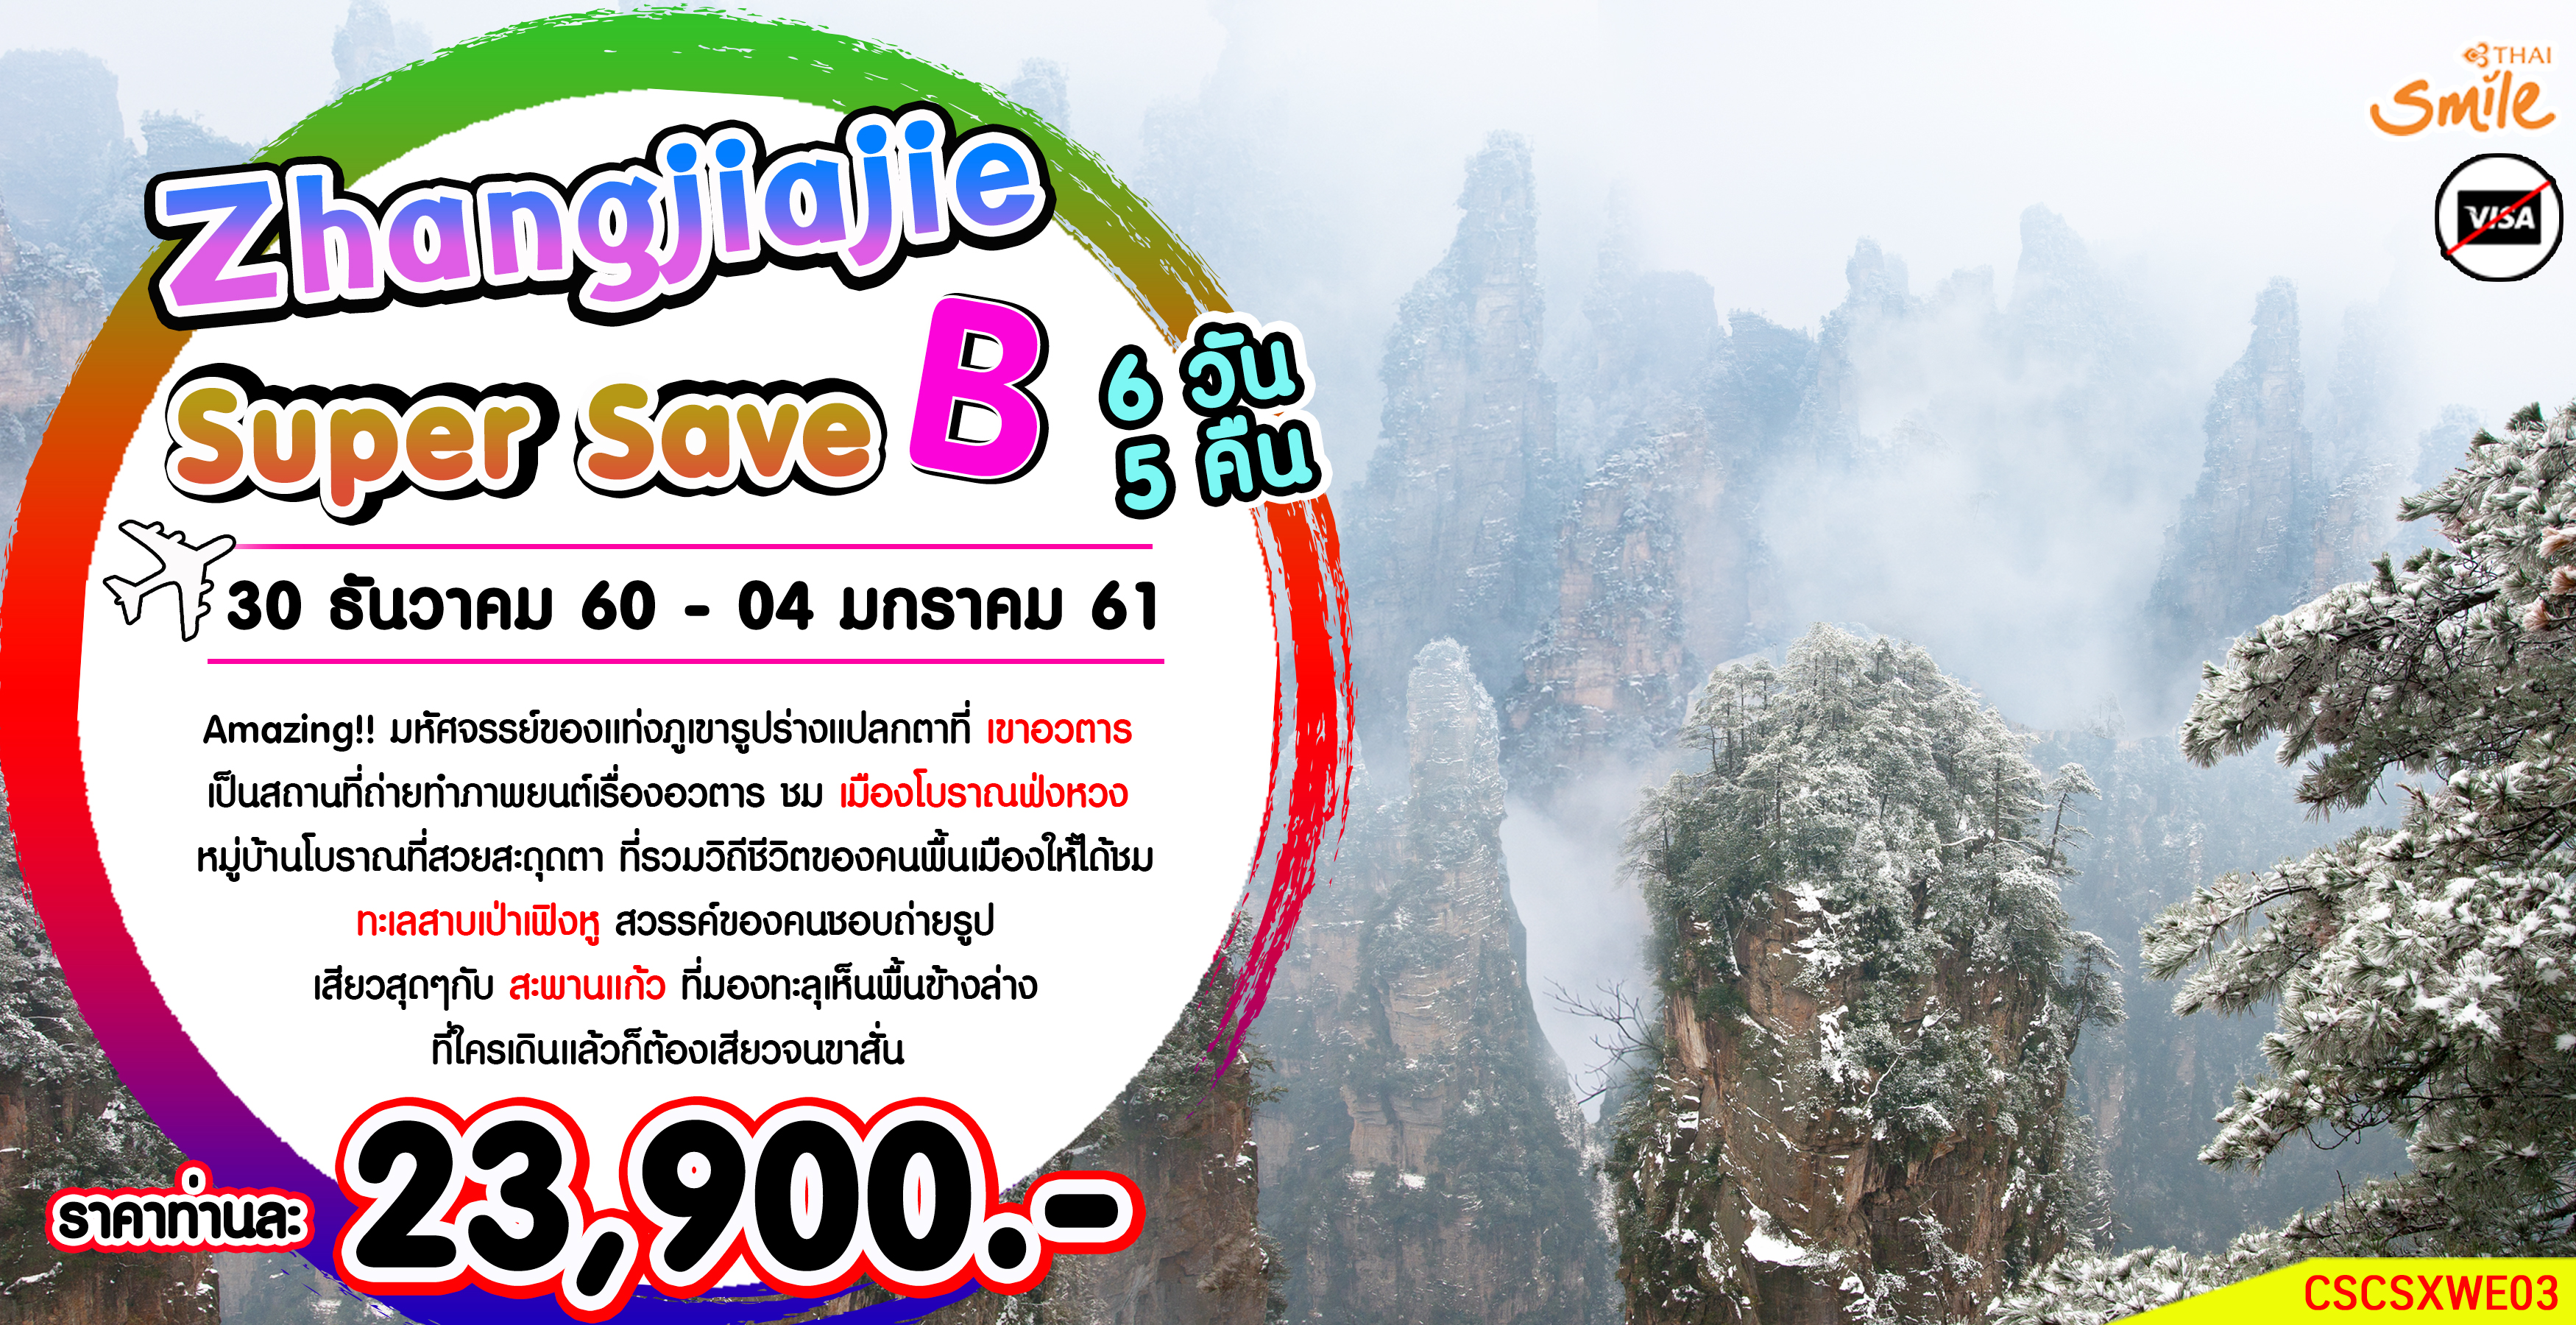 Zhangjiajie Super Save B 6 วัน 5 คืน